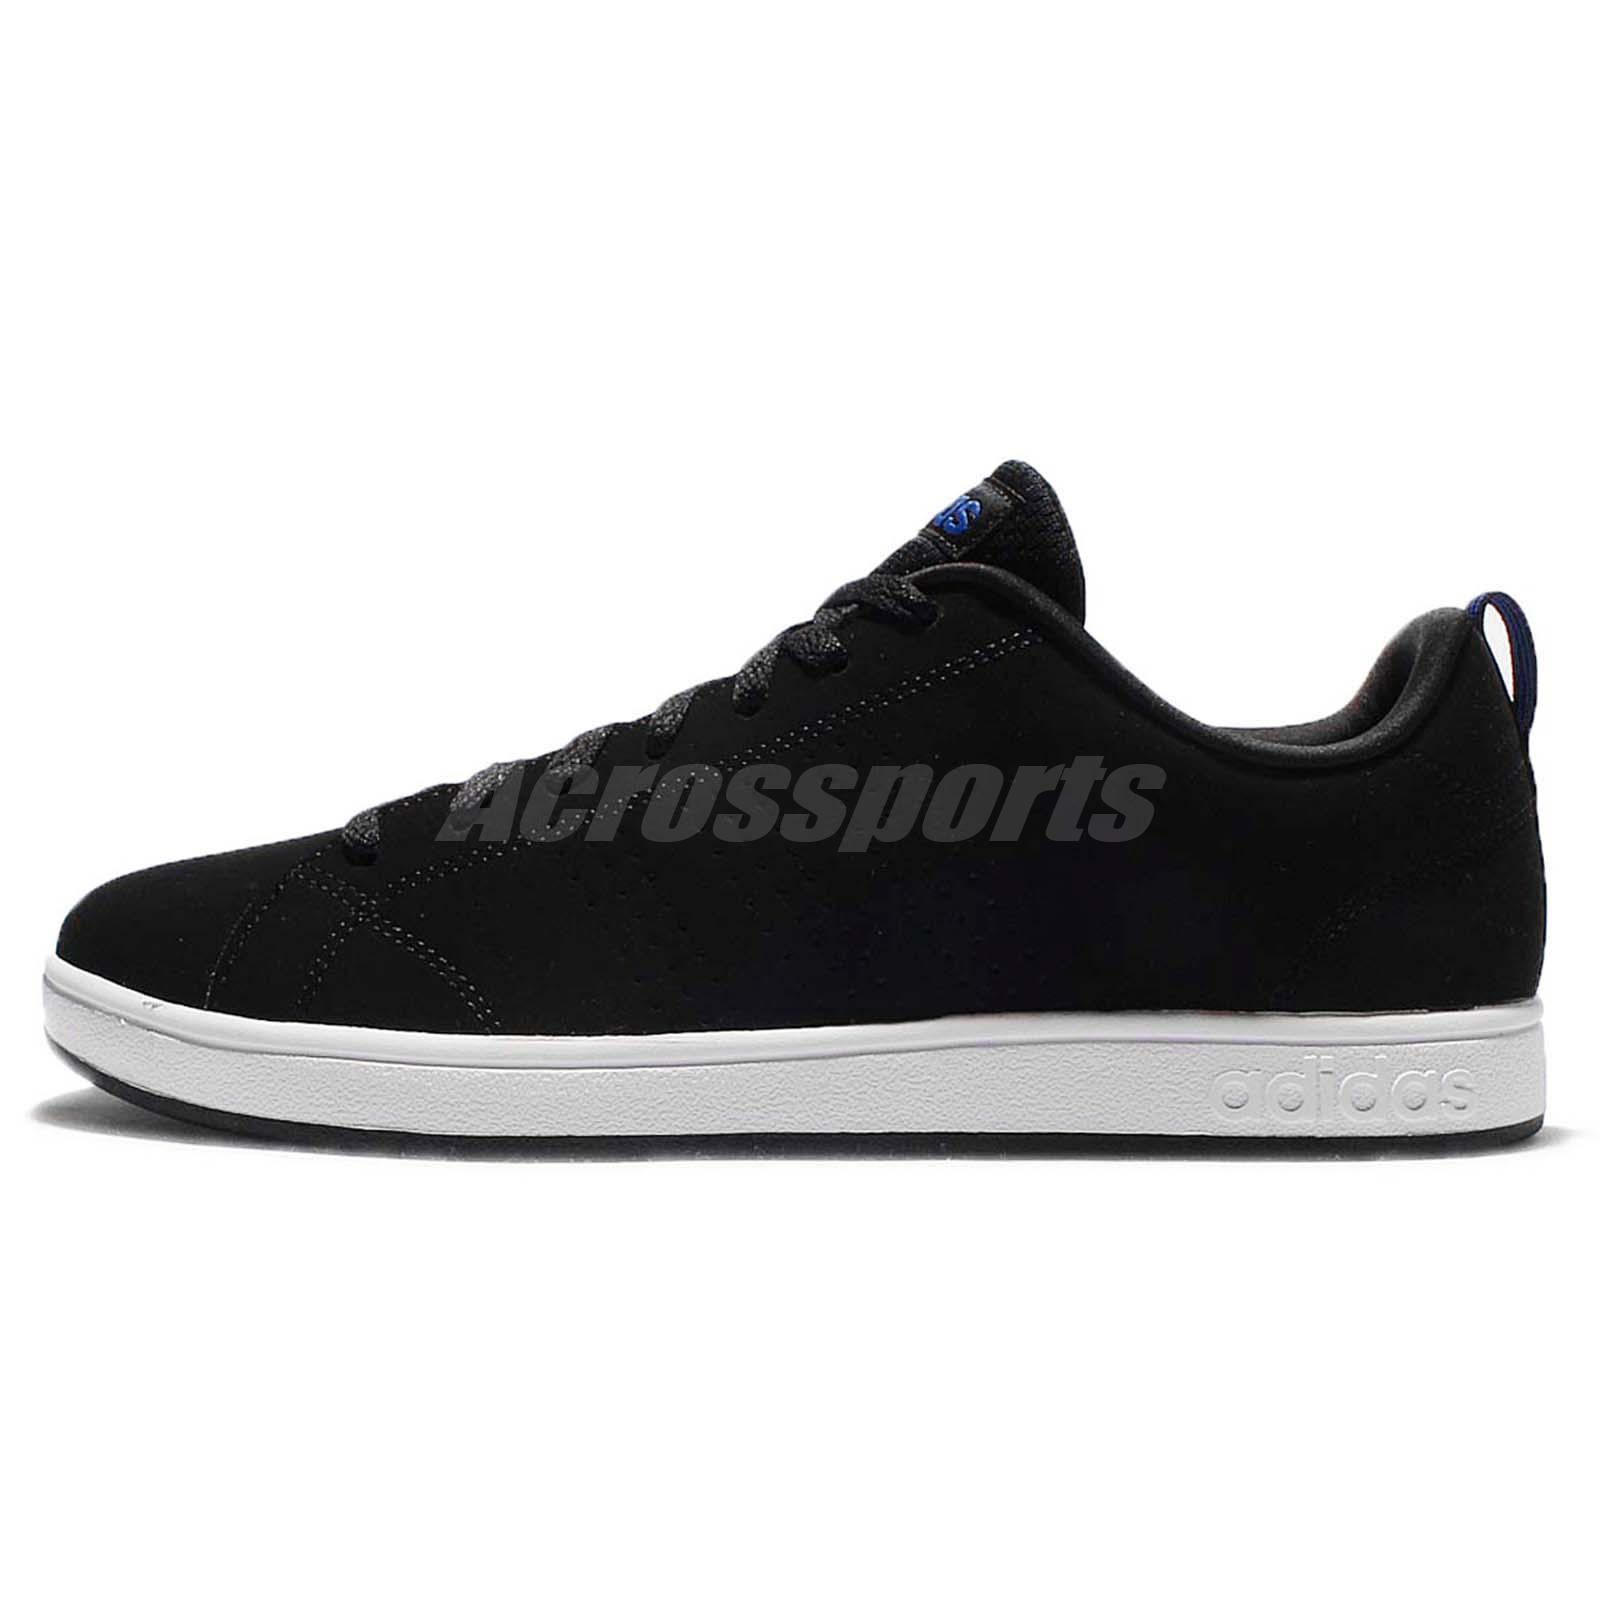 adidas Neo Label Advantage Clean VS Black White Mens Casual Shoes Sneaker AW4697